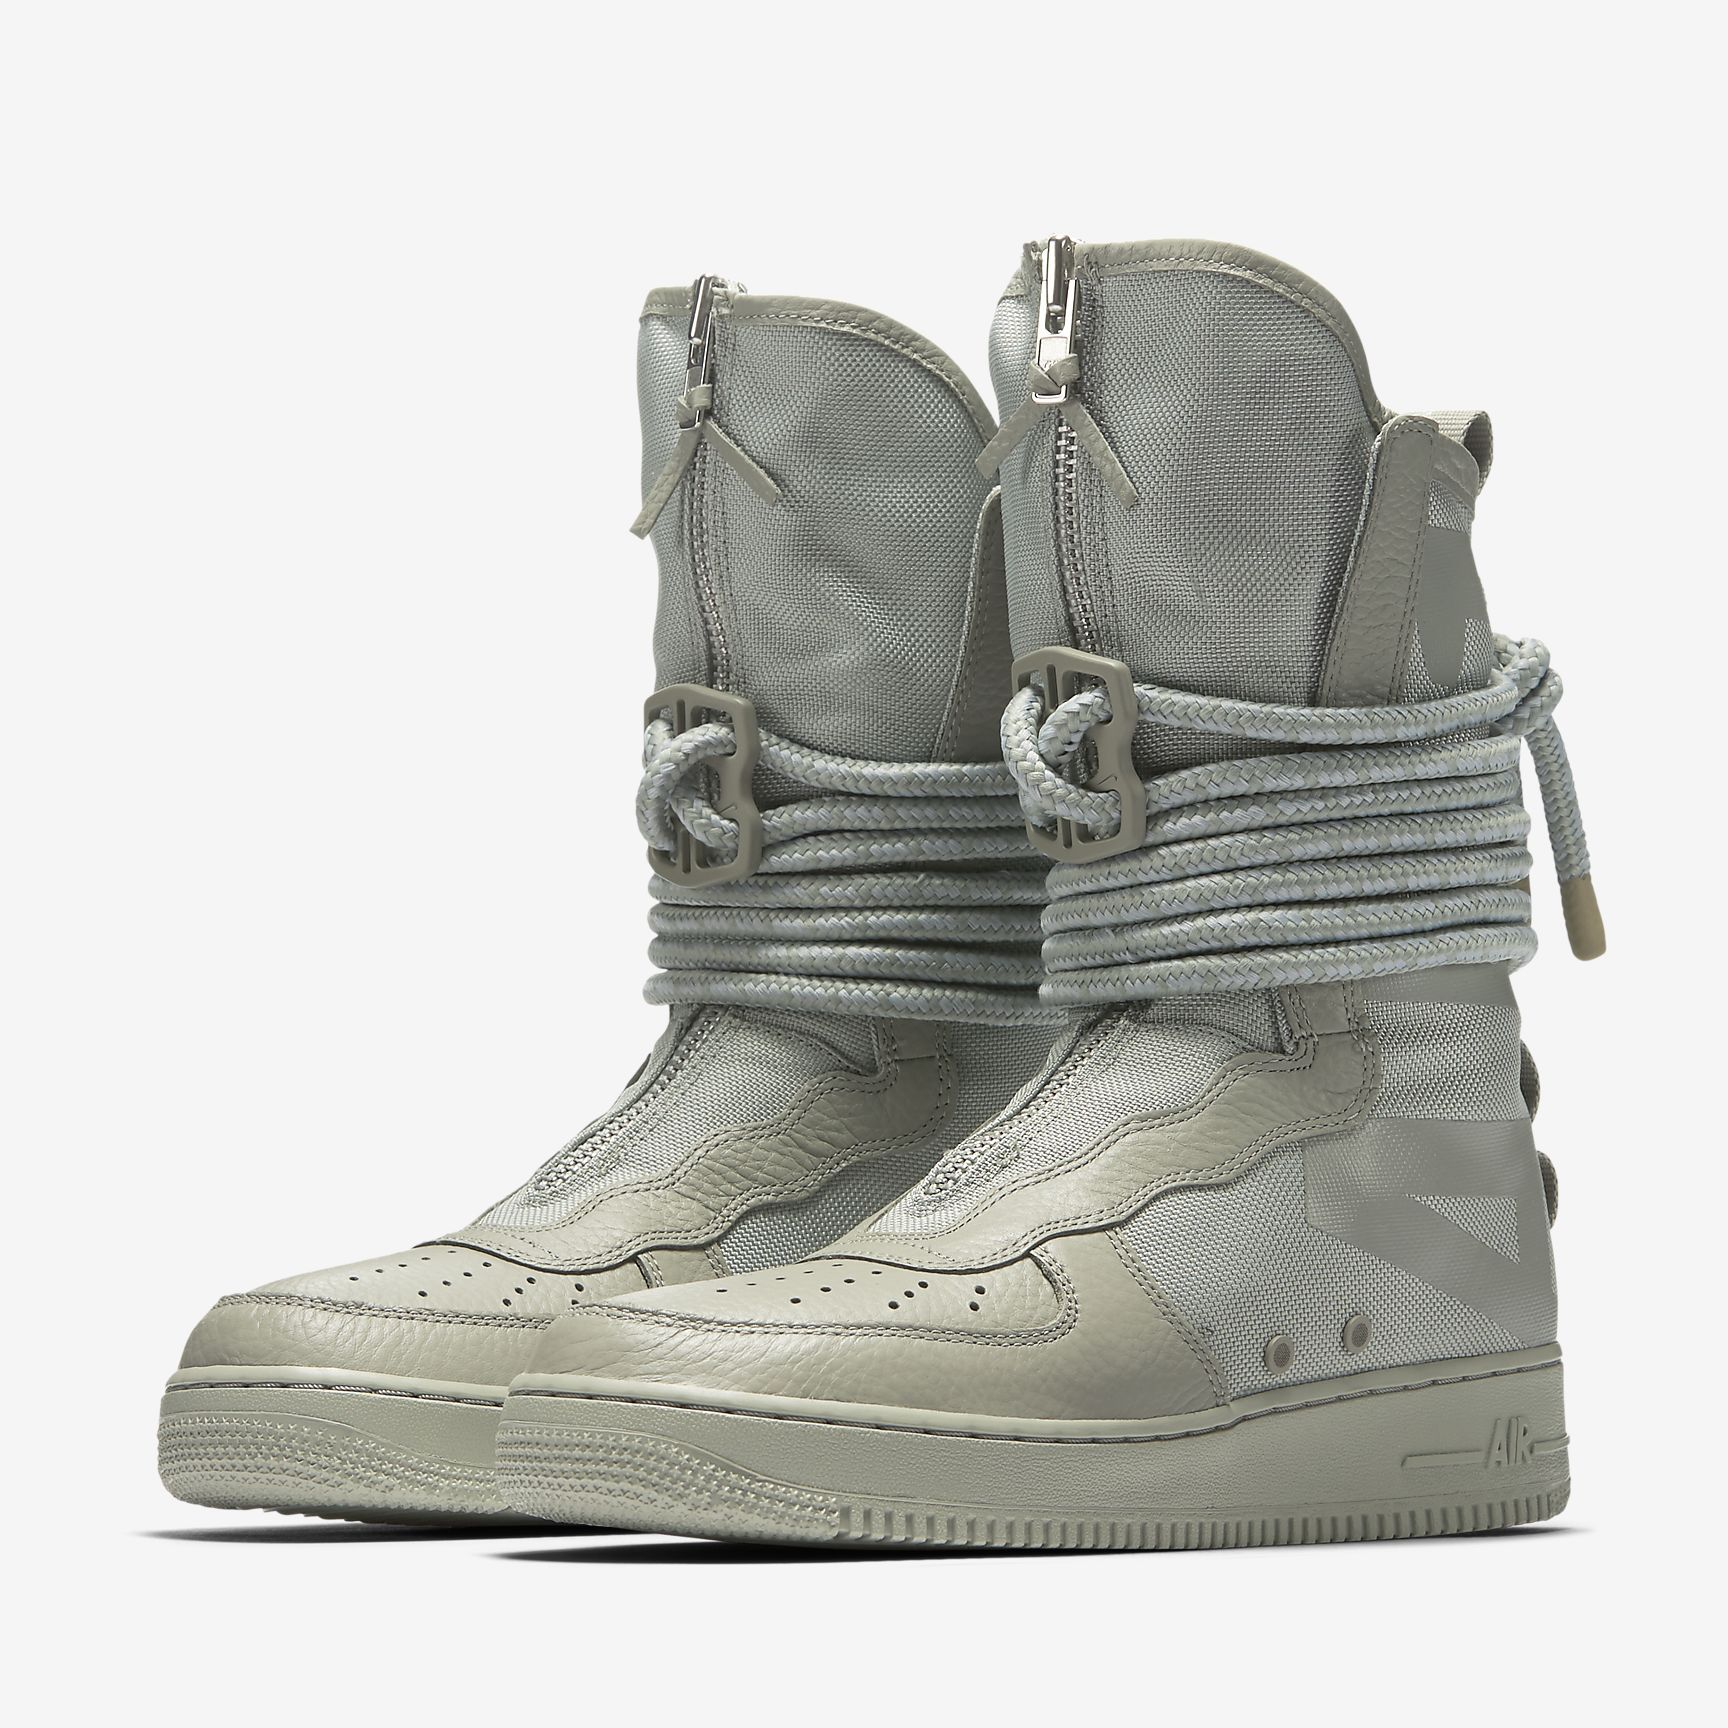 Nike SF Air Force 1 Hi SAGE | Nike air force